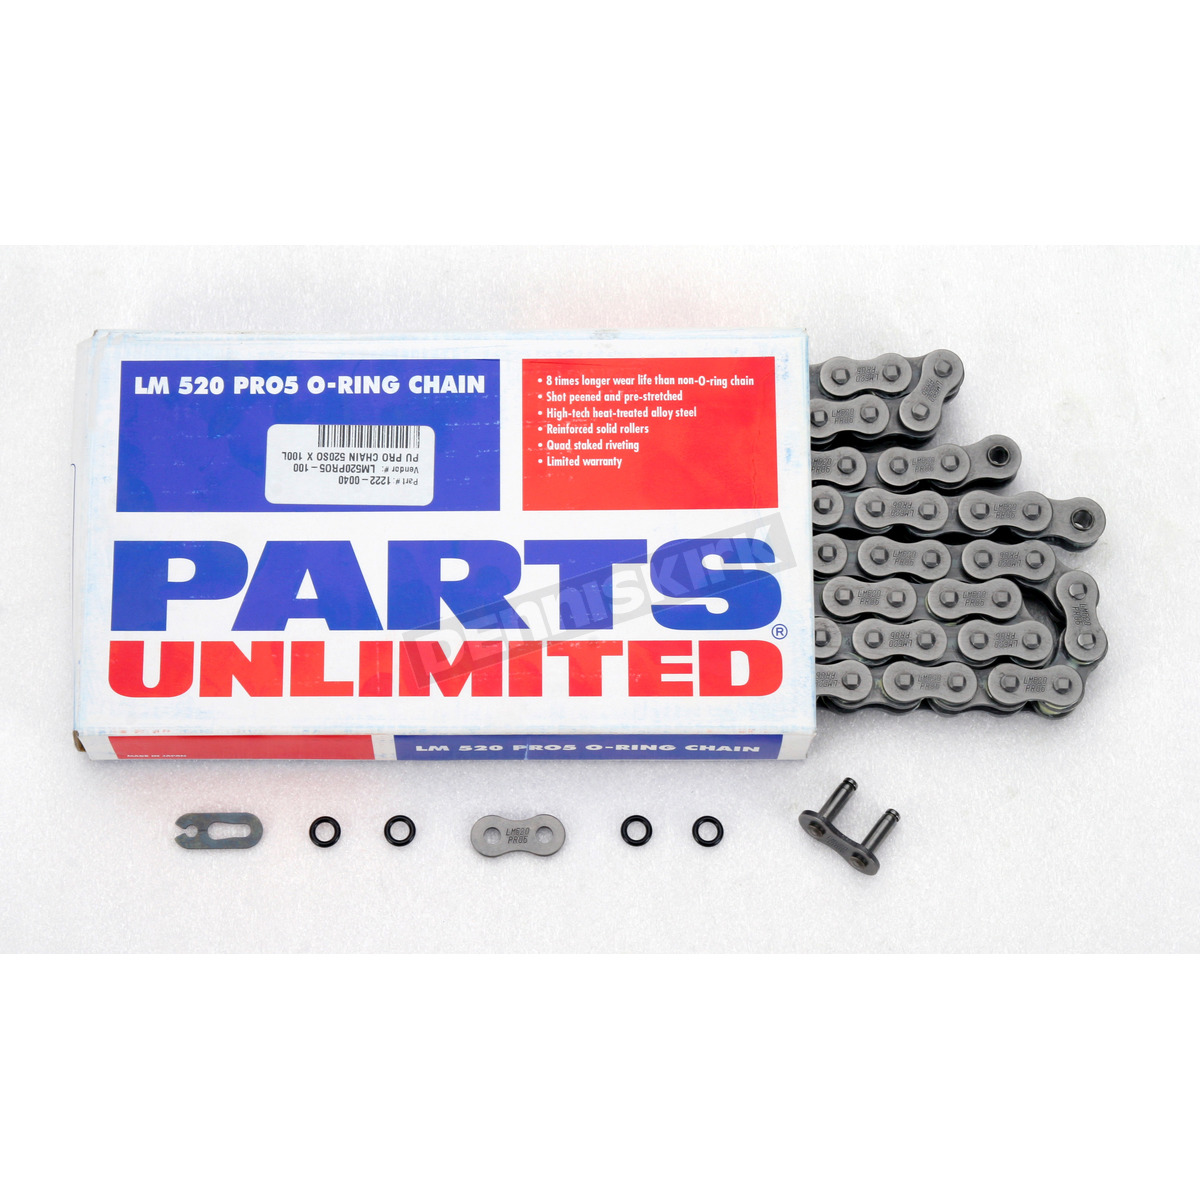 PartsNetWeb is a business to business web site intended for the private use of our dealers. If you are a Parts Unlimited dealer and need access to this site, just contact your Parts Unlimited sales rep.